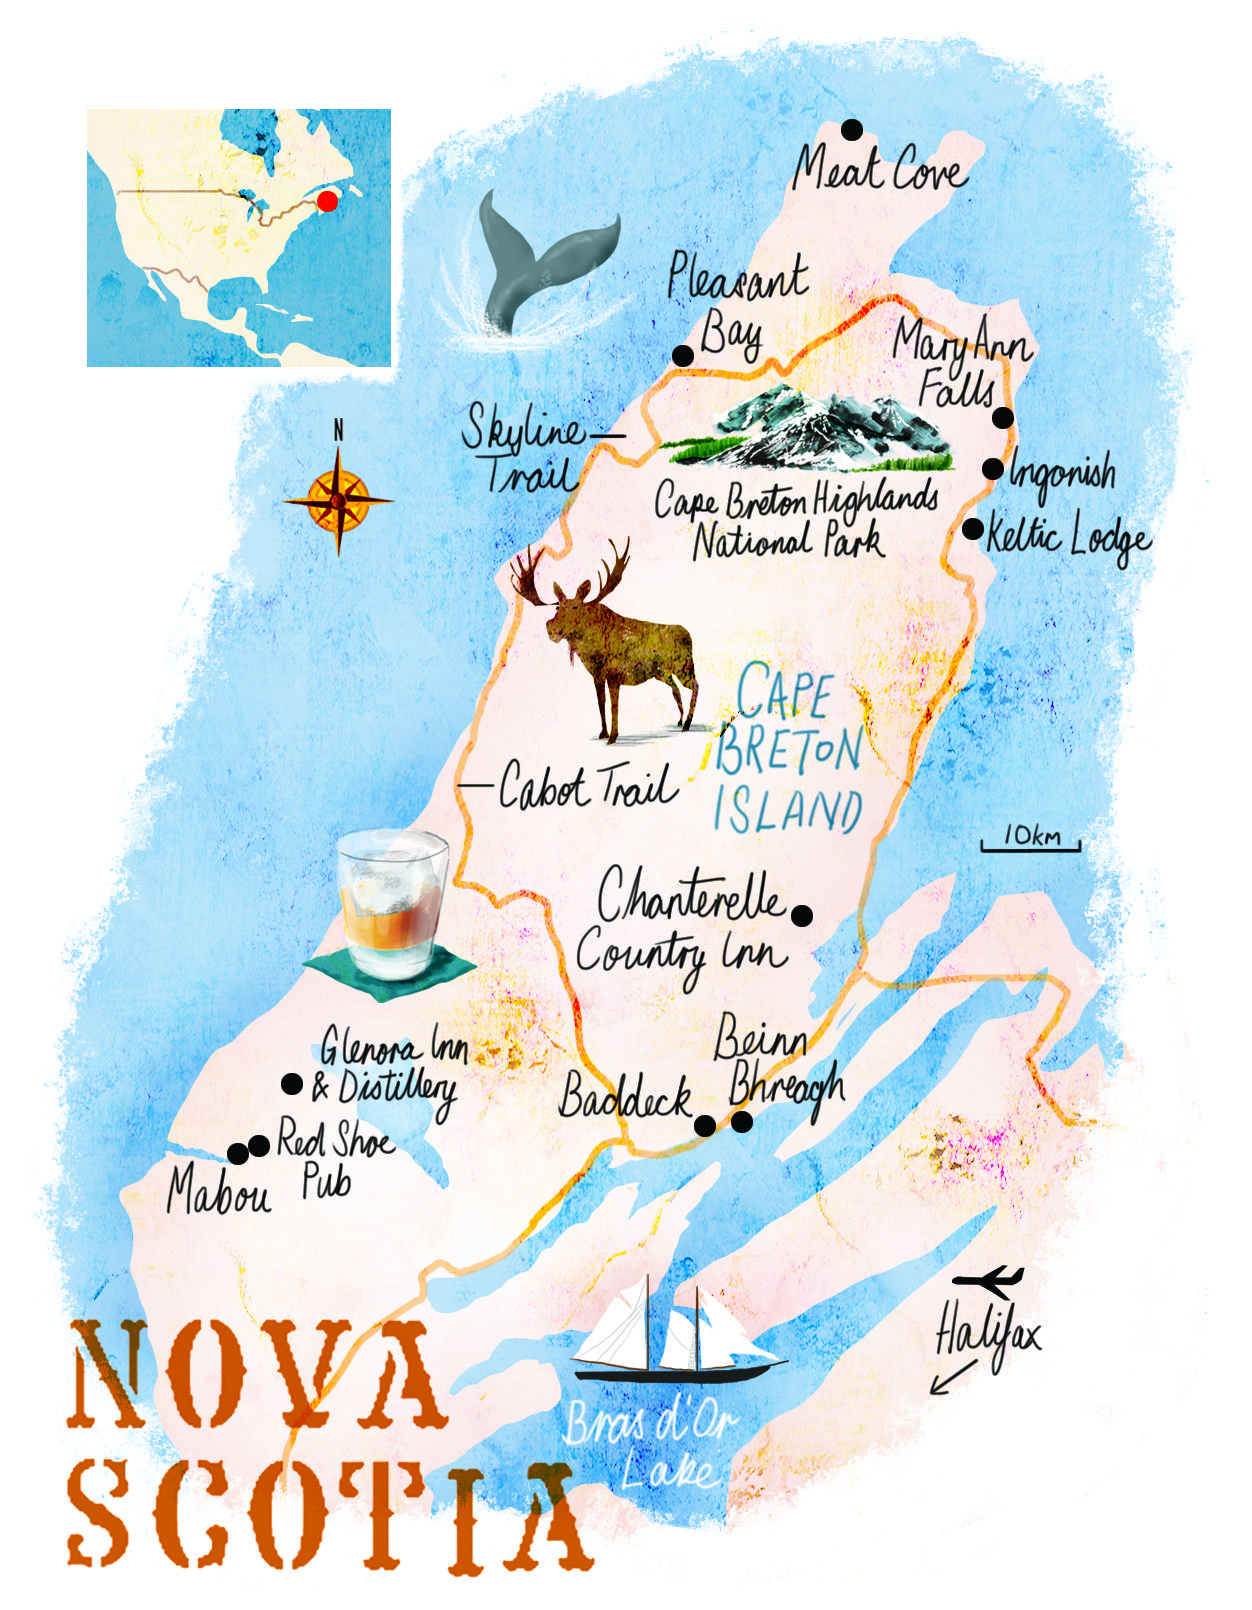 nova scotia map by scott jessop april 2016 issue